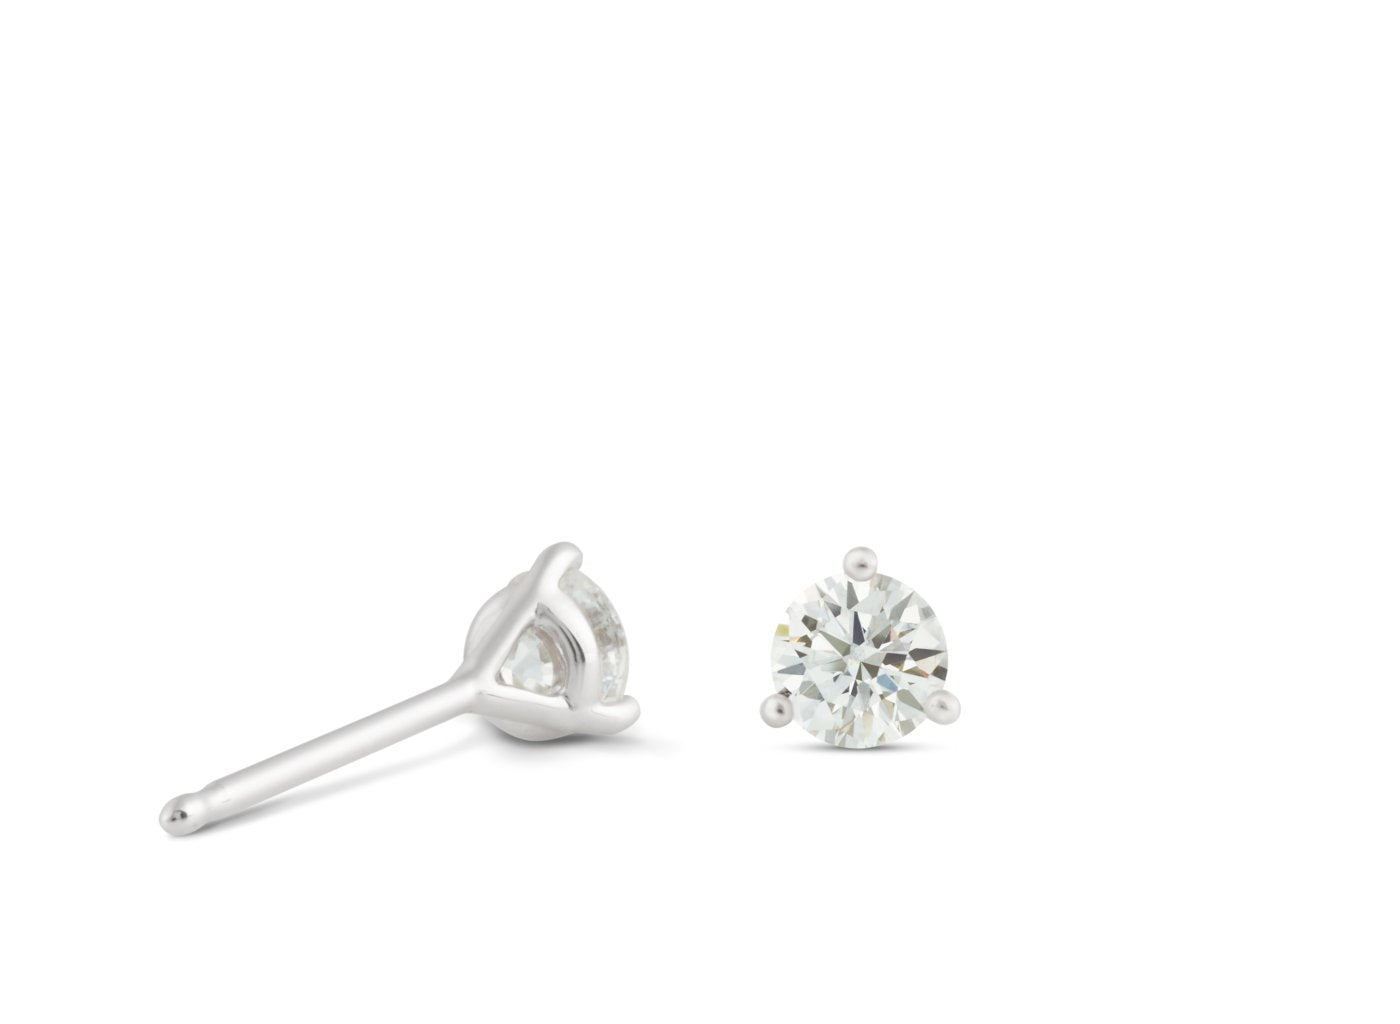 Back view of Solitaire 1/2 carat earrings with white diamonds